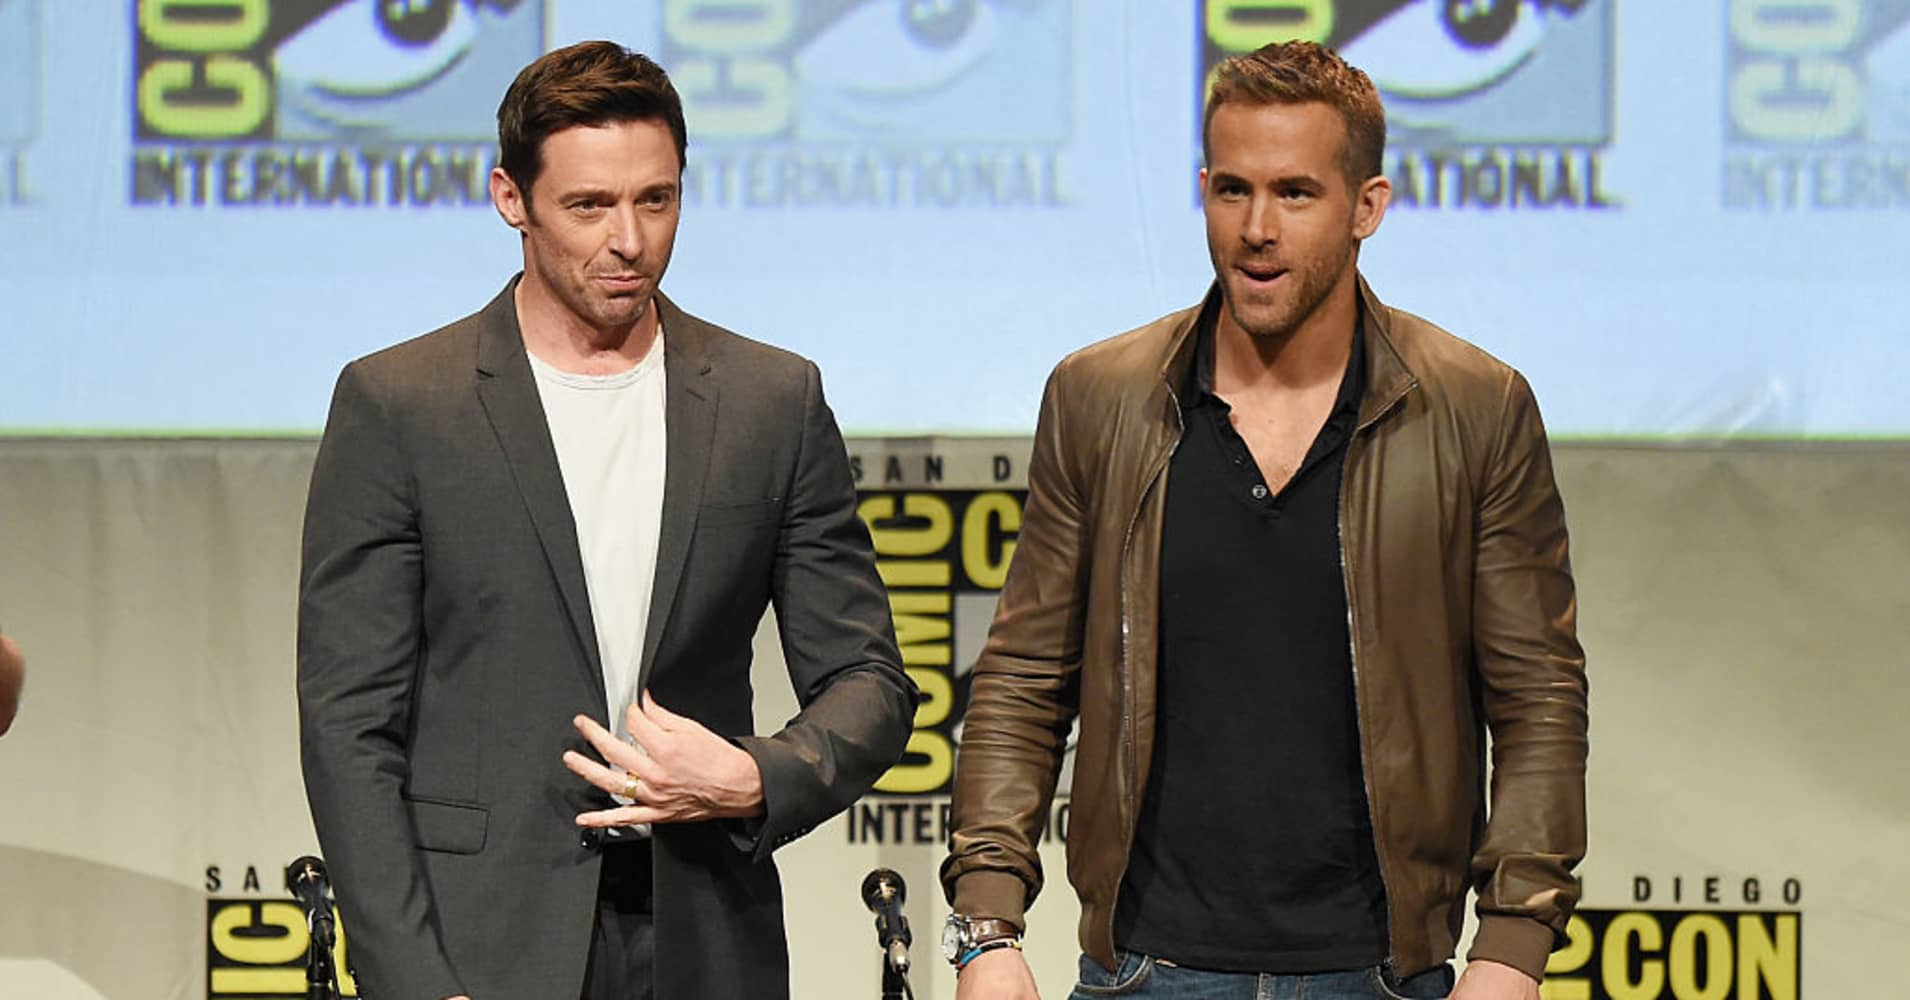 'Feuding' Hugh Jackman and Ryan Reynolds try to call a truce in ads for each other's products